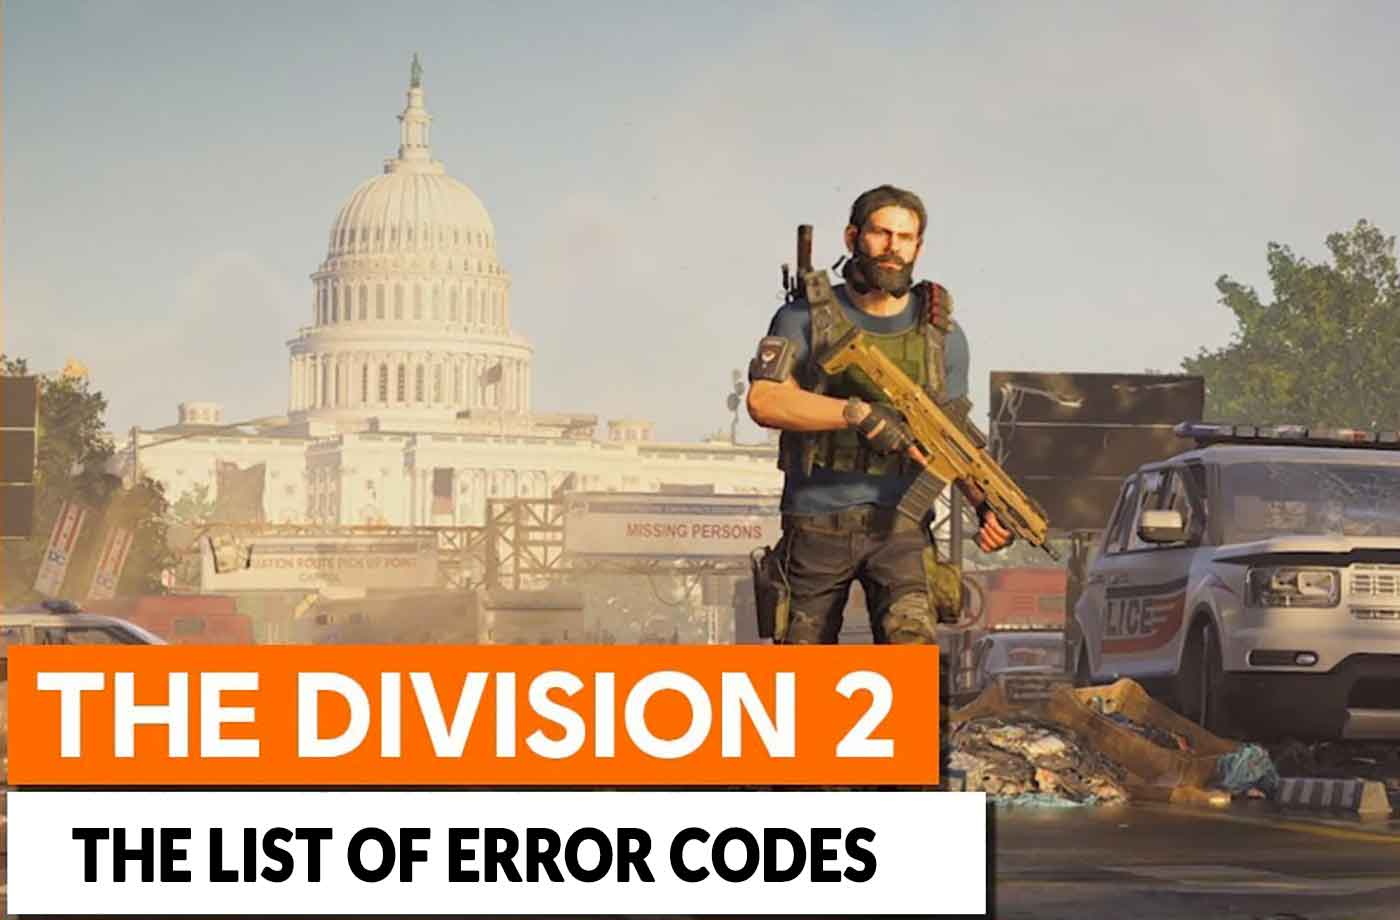 Guide The Division 2 the list of error codes and their